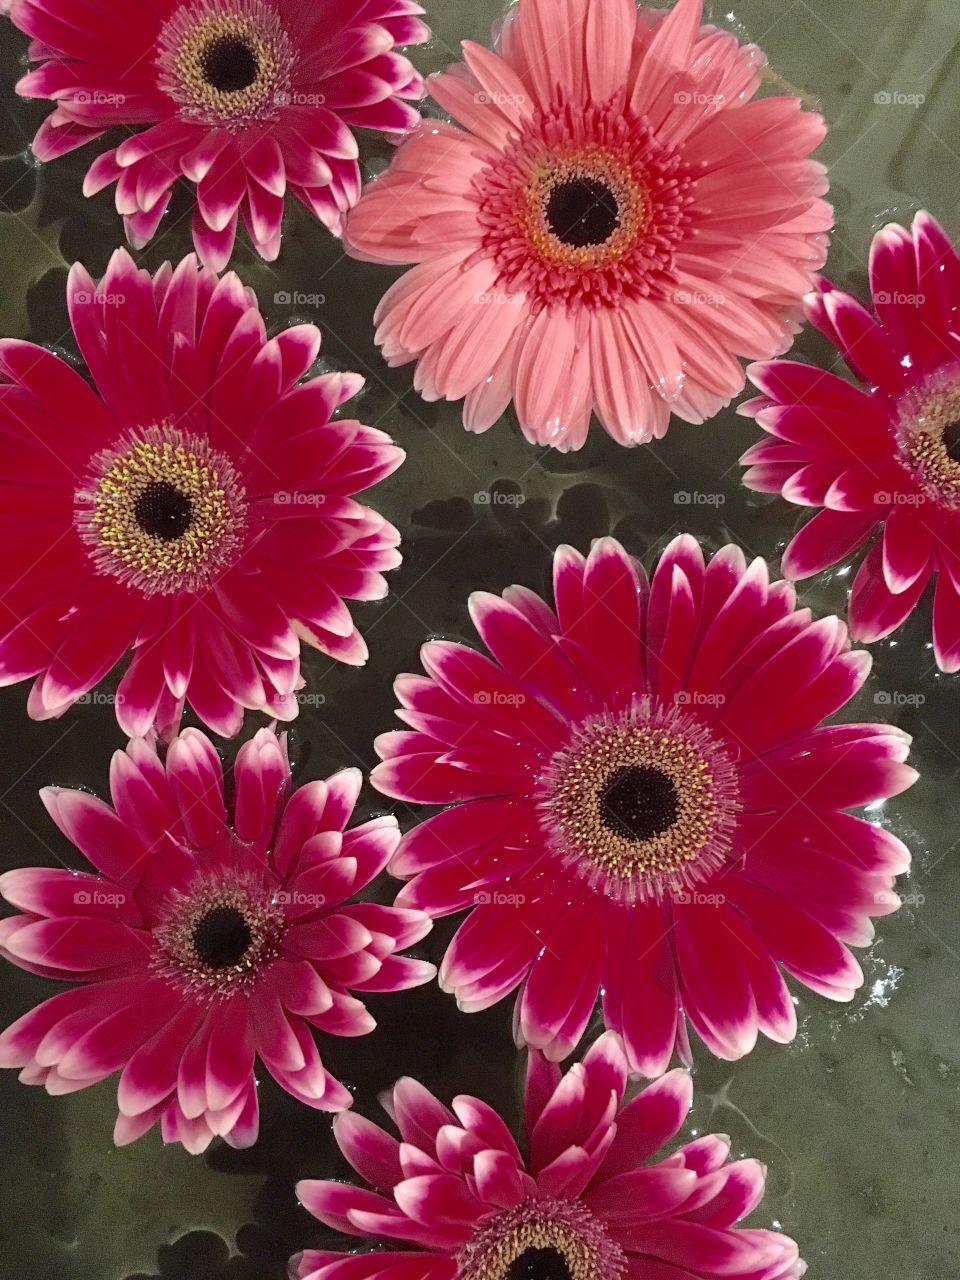 Flowers red daisy